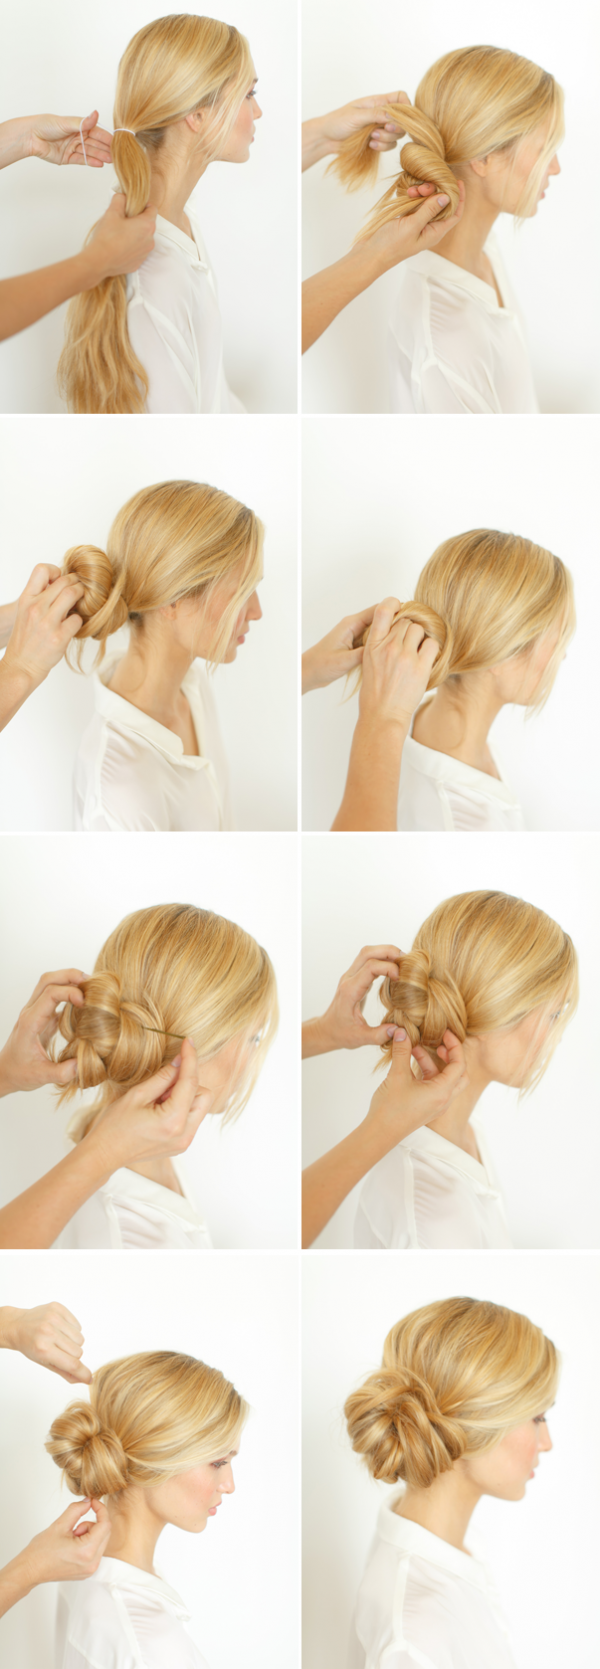 DIY Knotted Bun Wedding Hairstyle | Side hairstyles, Amazing hair ...